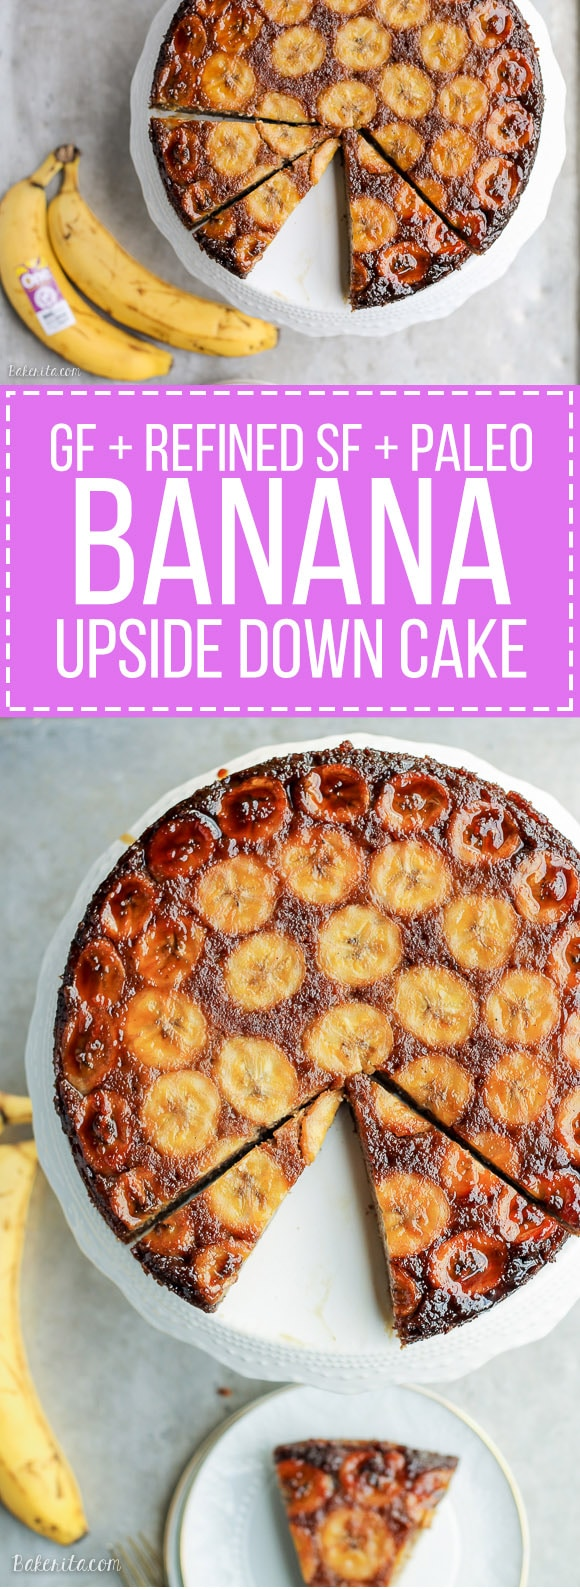 This Paleo Banana Upside Down Cake is an impressive and delicious cake that's gluten-free and refined sugar free. Sweetened almost entirely with bananas, this is a banana lover's dream!